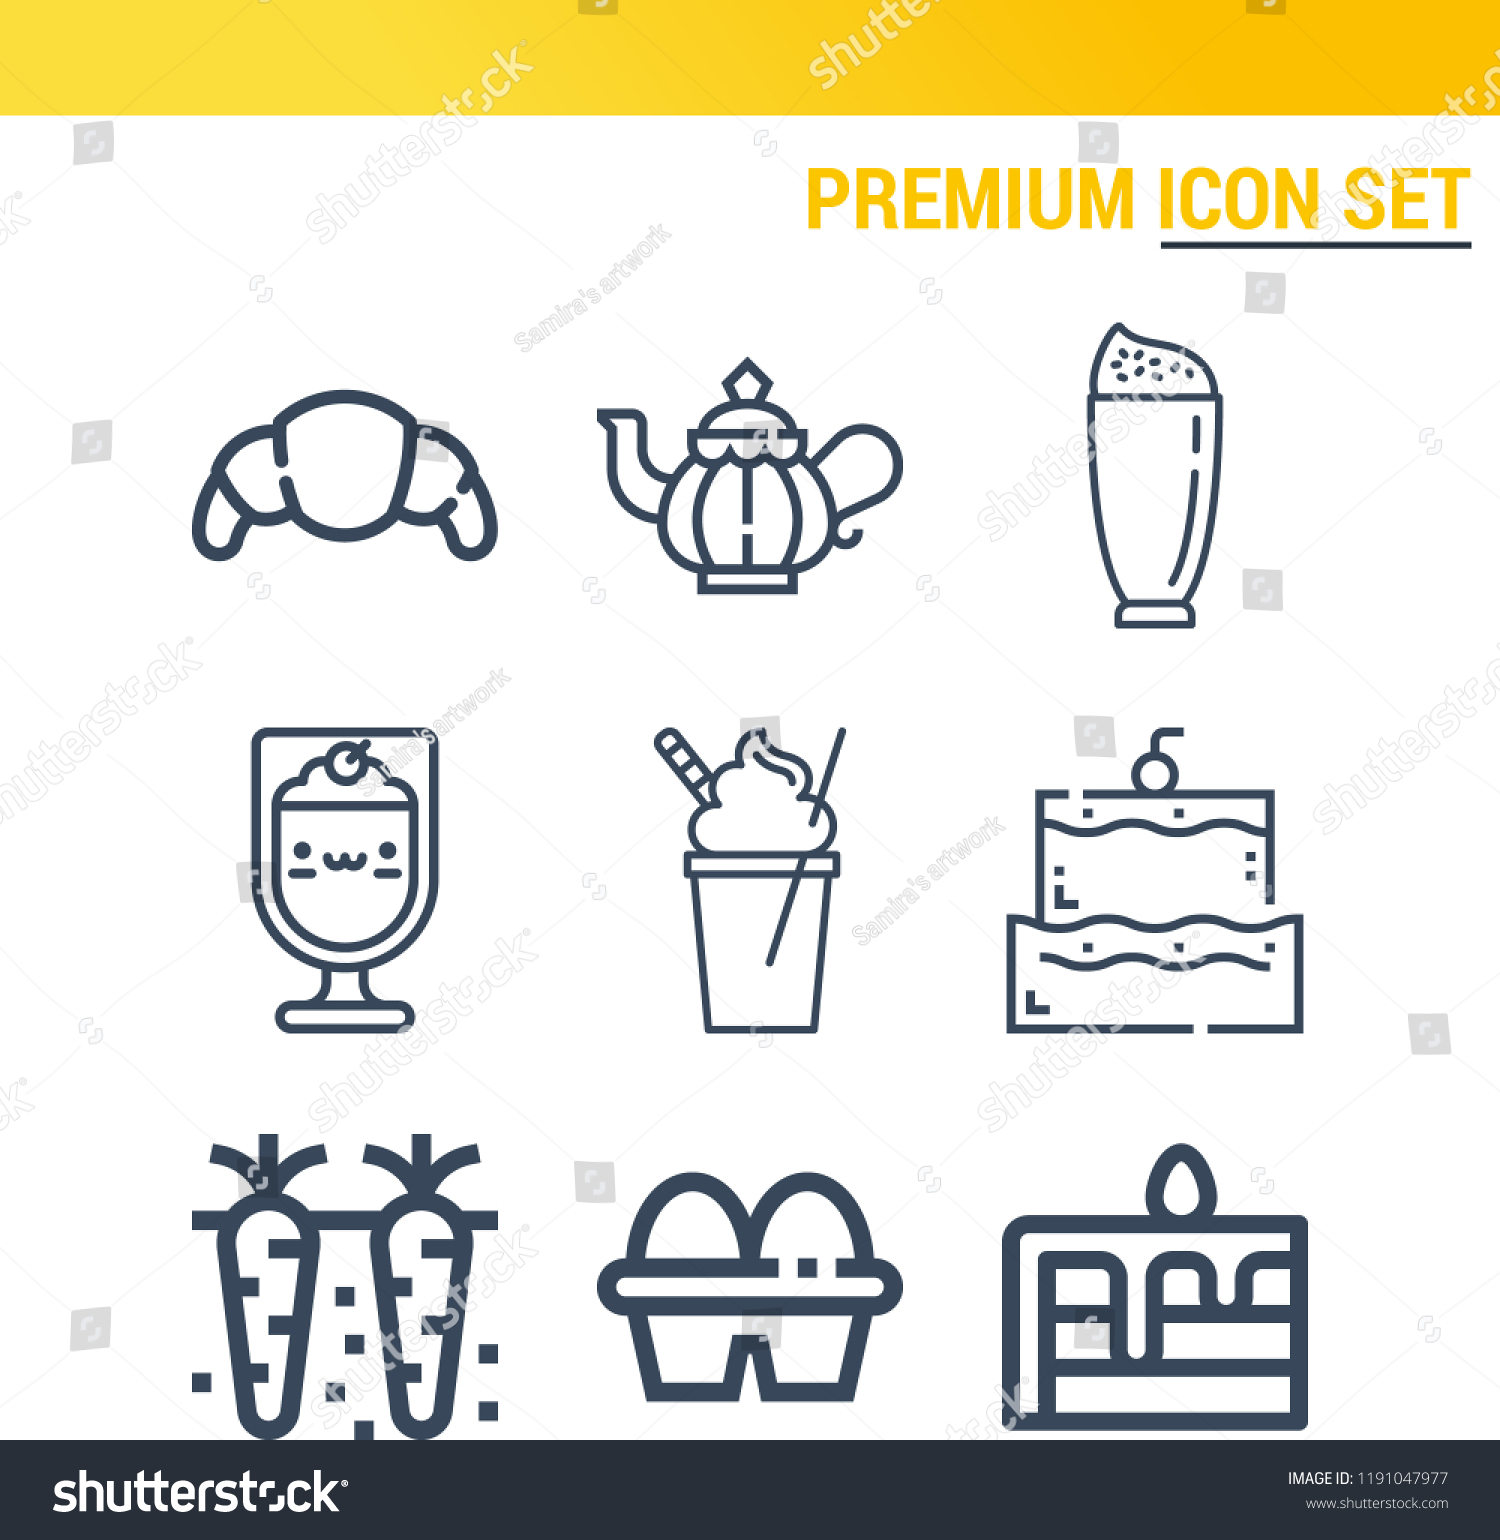 Royalty Free Stock Illustration Of Simple Set 9 Outline Icons On